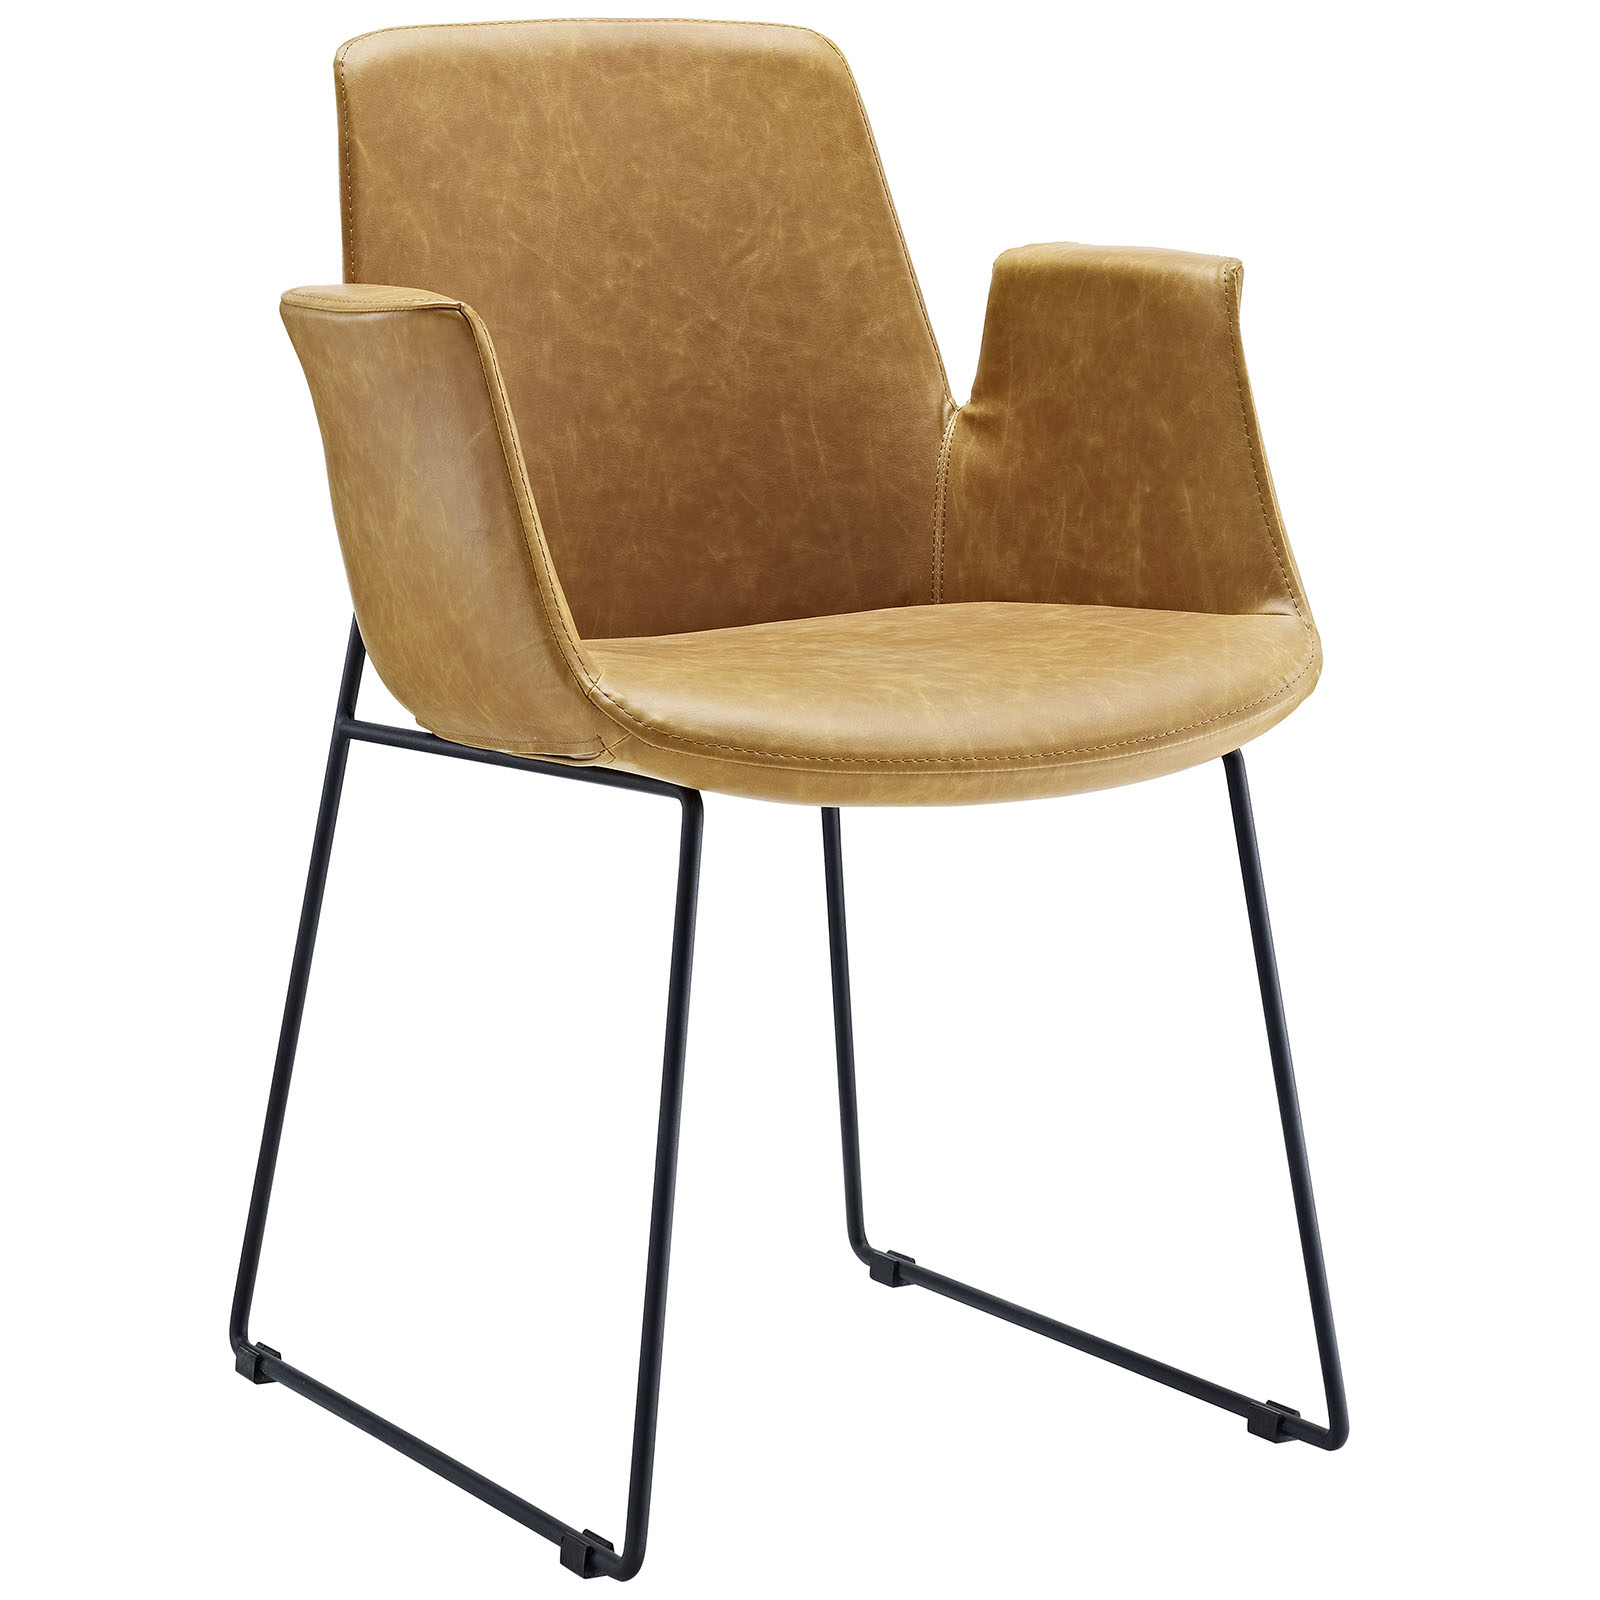 Tan Beacon Armchair